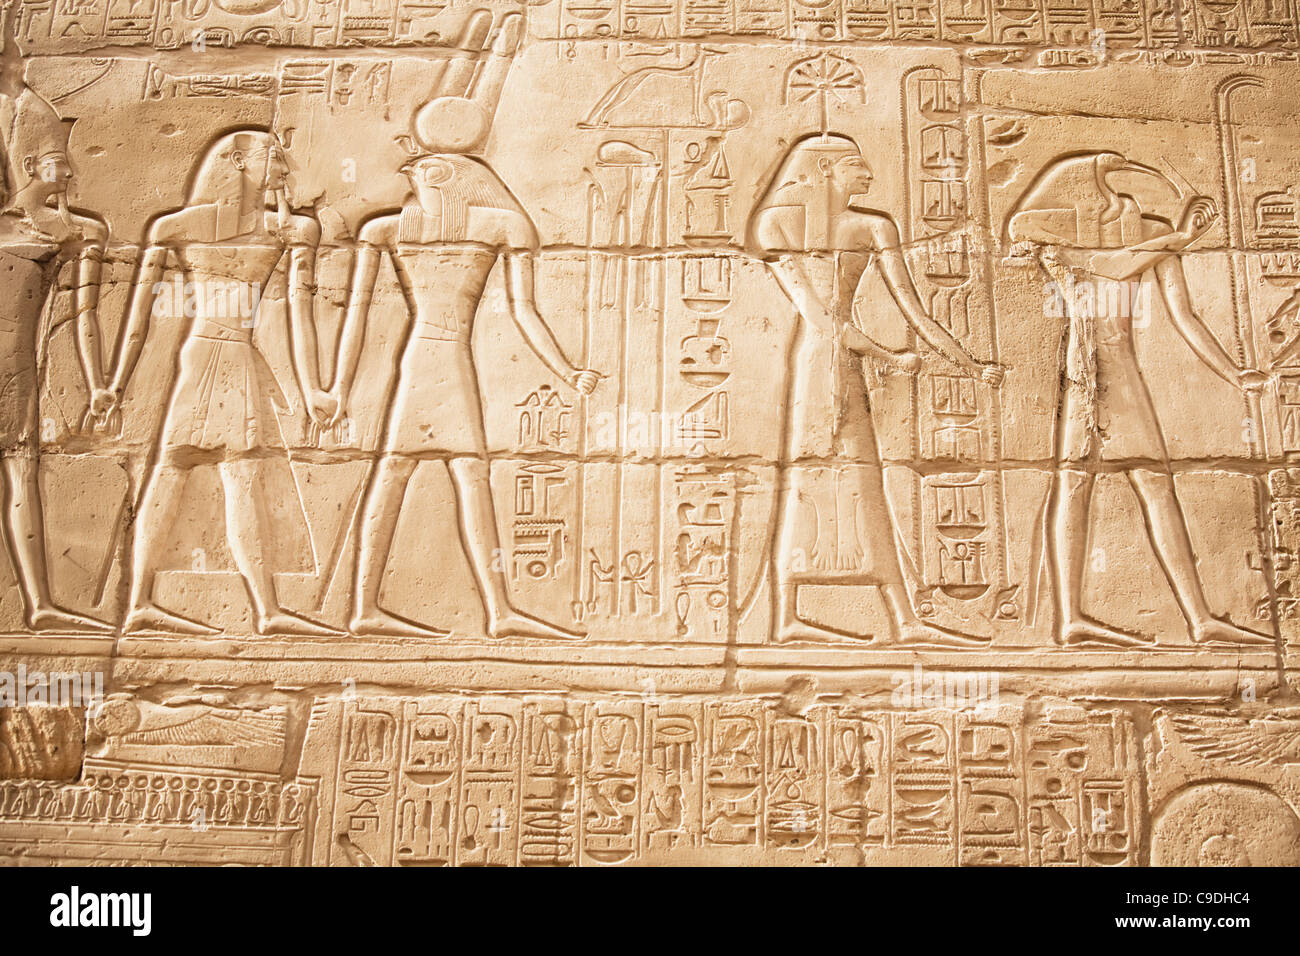 Egypt luxor karnak temple relief carvings on wall of